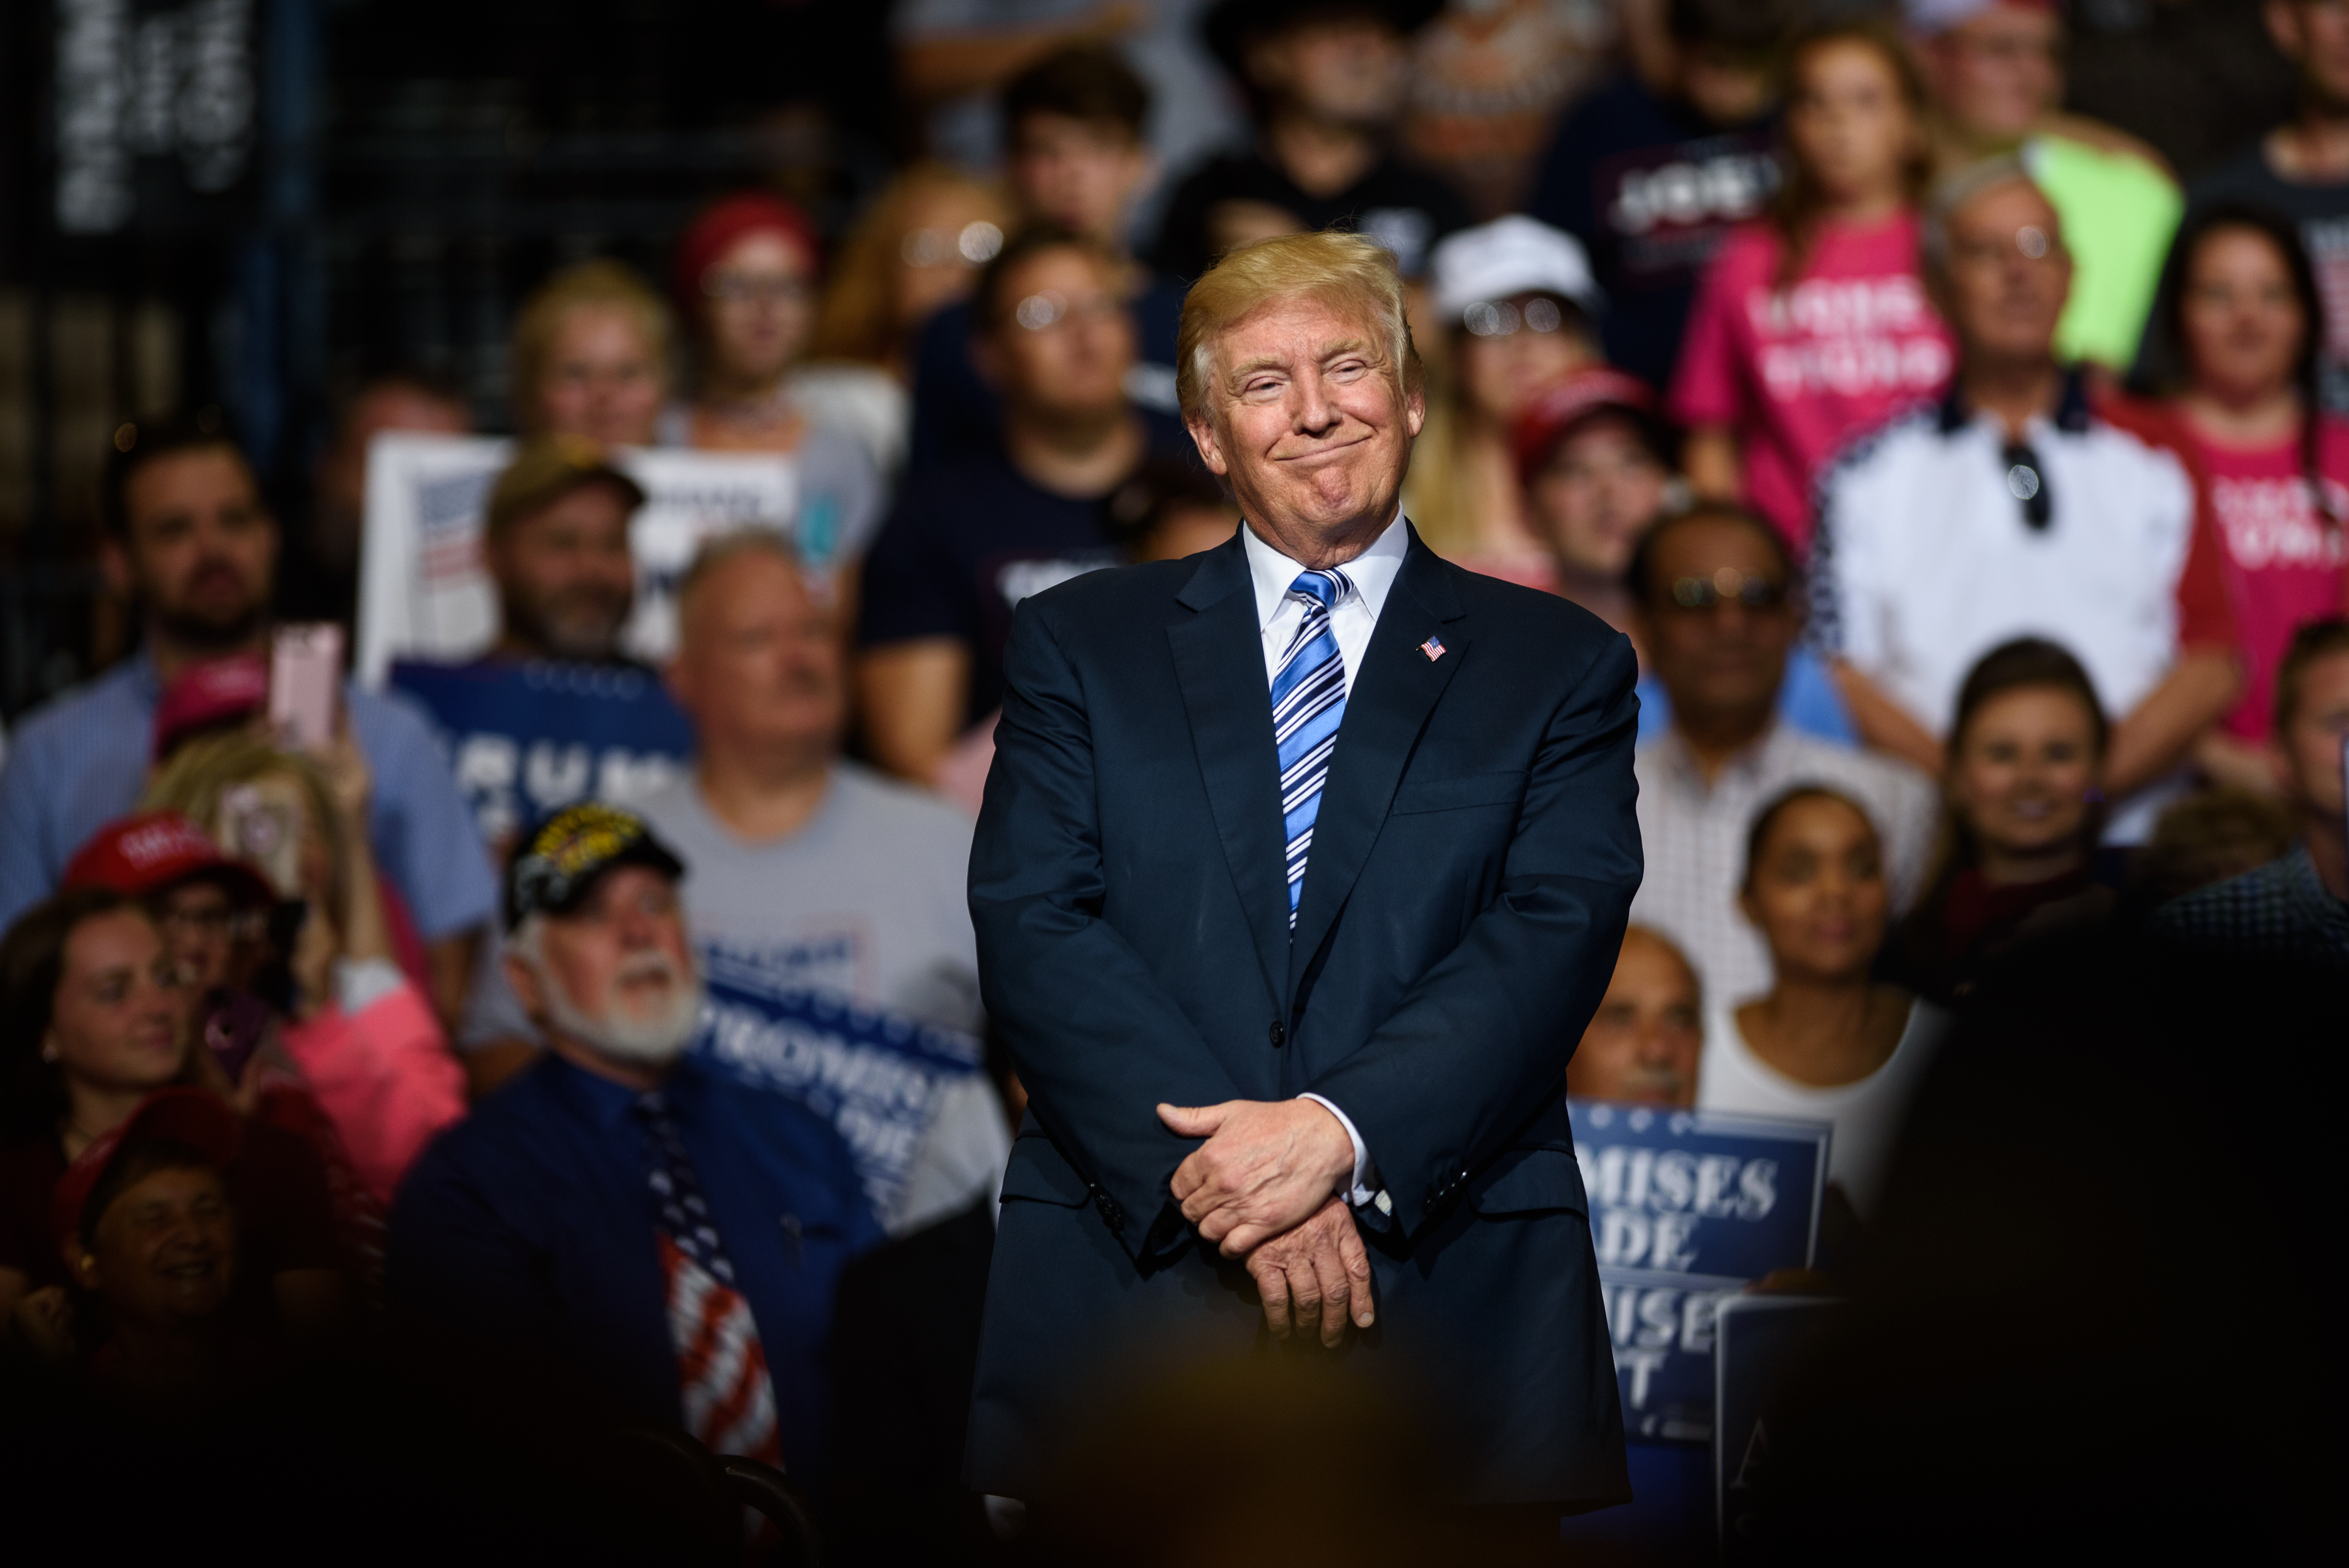 President Donald J. Trump listens as West Virginia Governor Jim Justice announces that he is switching parties to become a republican during the president's campaign rally at the Big Sandy Superstore Arena on August 3, 2017 in Huntington, West Virginia.